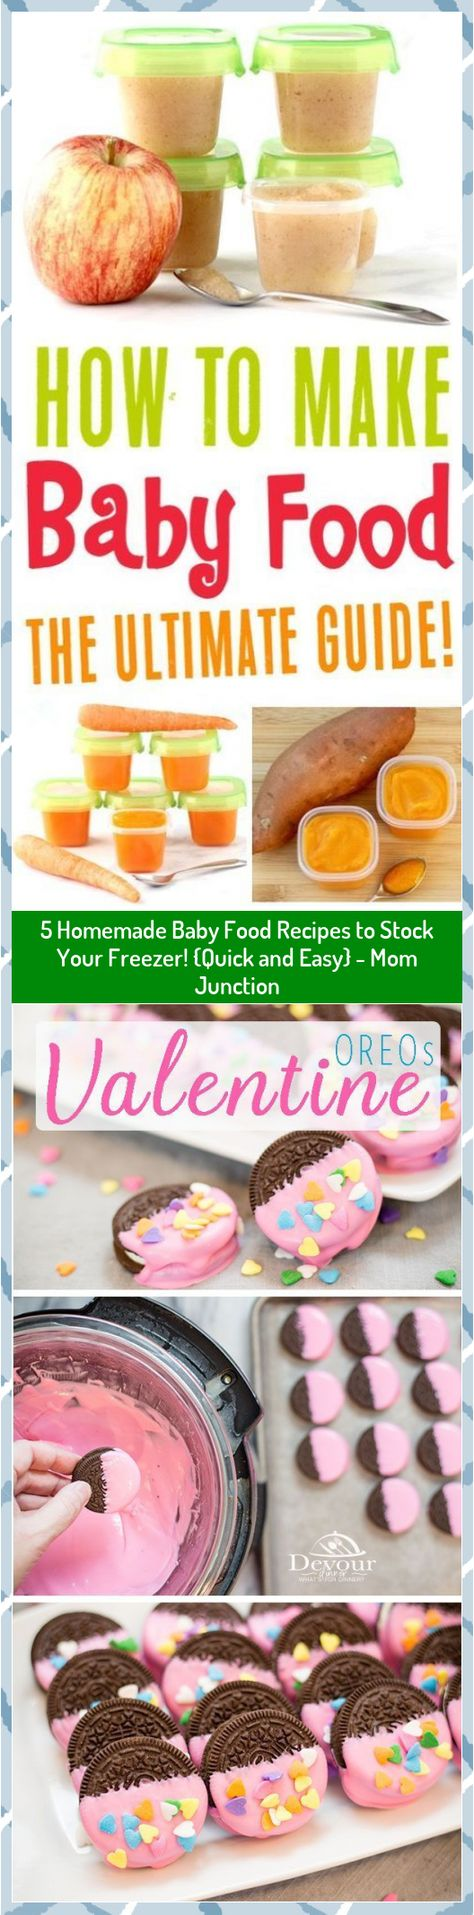 5 Homemade Baby Food Recipes to Stock Your Freezer! {Quick and Easy} - Mom Junction #baby #Easy #Food #Freezer #Homemade #Junction #Mom #Quick #Recipes #Stock